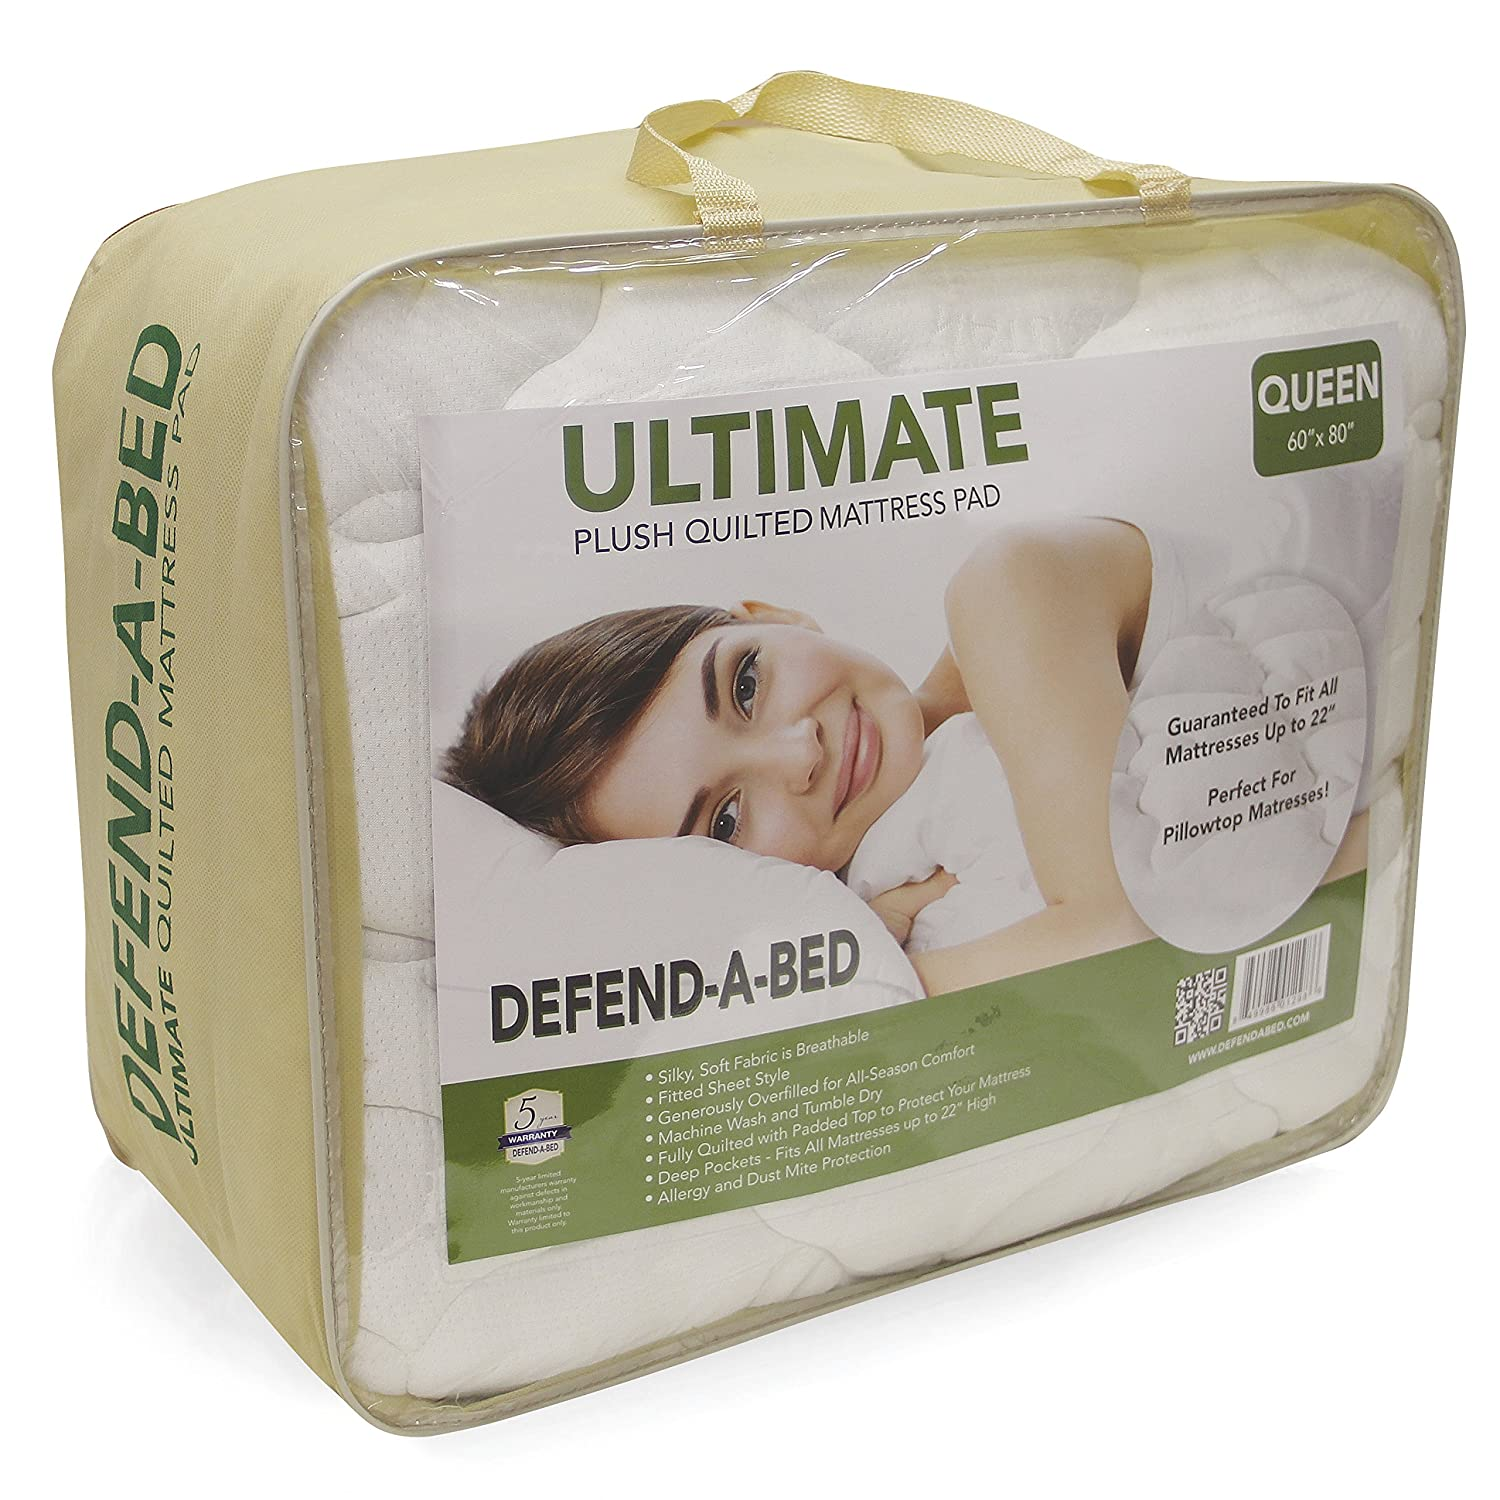 Amazon.com: Classic Brands Defend-A-Bed Ultimate Bamboo-Rayon Quilted Waterproof Mattress Protector, Full: Home & Kitchen